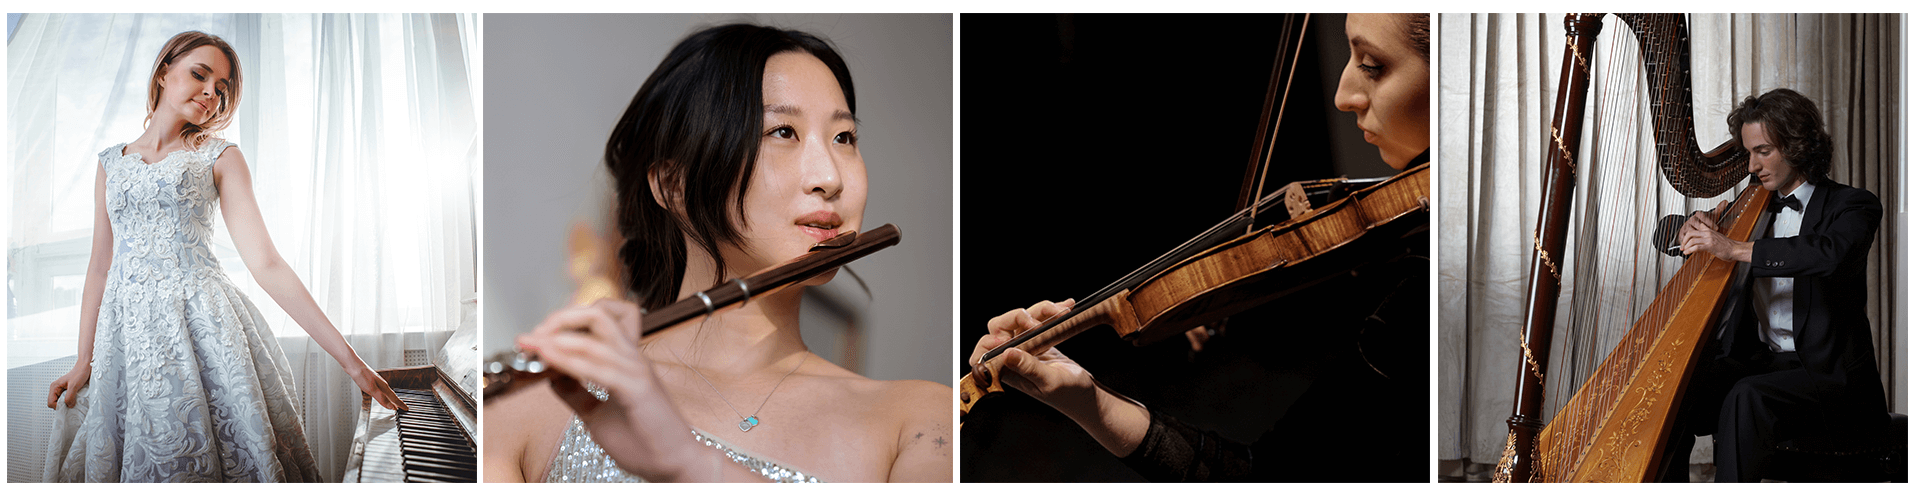 Classicalia classical music competition 2021 adults category